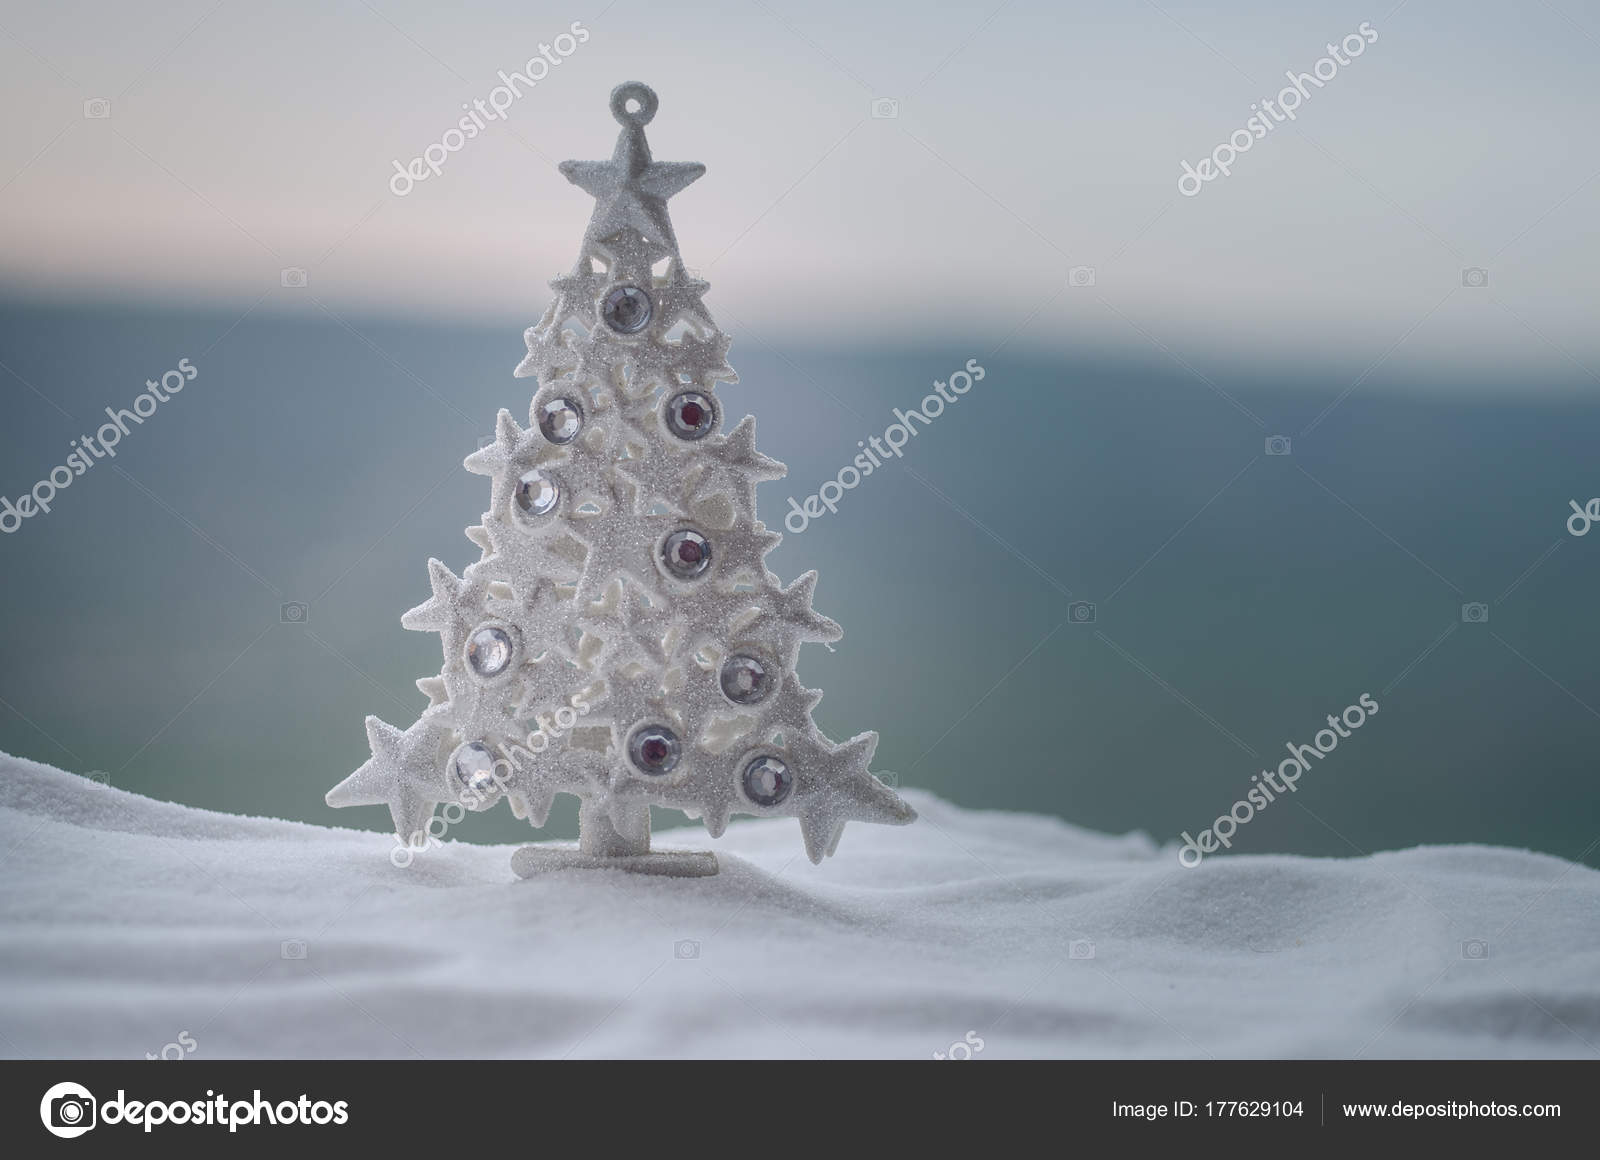 cccfc8049ca Christmas background with snowy fir trees. Snow Covered Christmas Tree  stands out brightly against blurred nature background. Outdoor– stock image